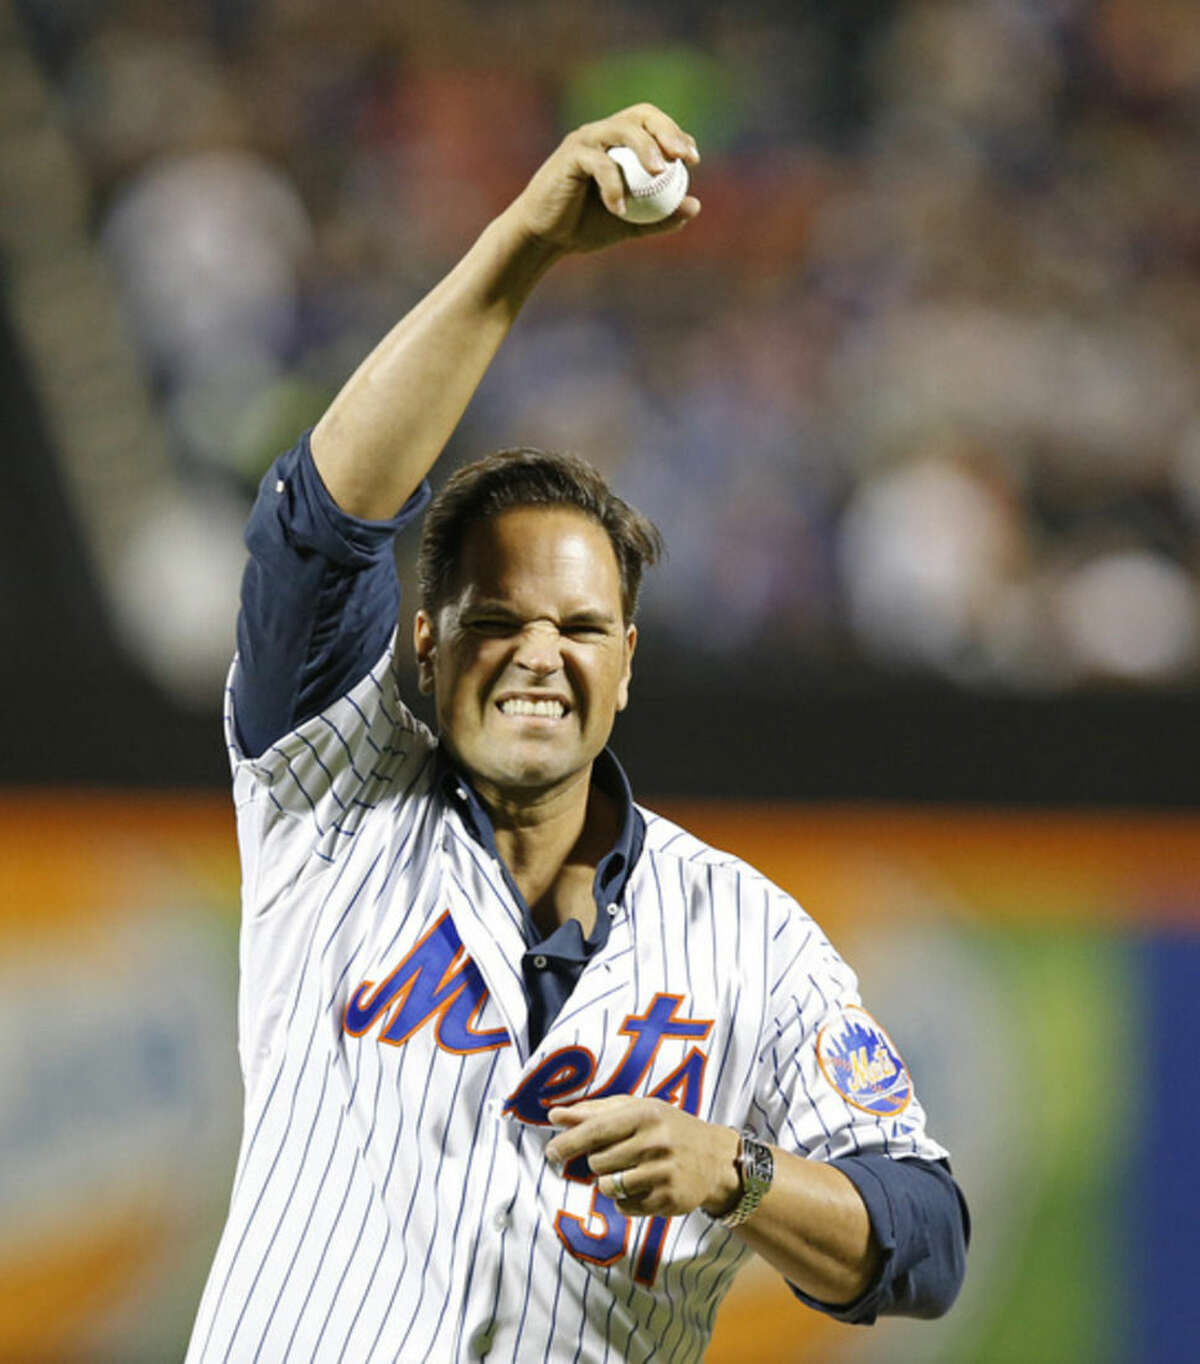 Former New York Mets catcher Mike Piazza grimaces as he warms up his arm before throwing out the ceremonial first pitch before a baseball game between the New York Mets and the New York Yankees in New York, Sunday, Sept. 20, 2015. (AP Photo/Kathy Willens)